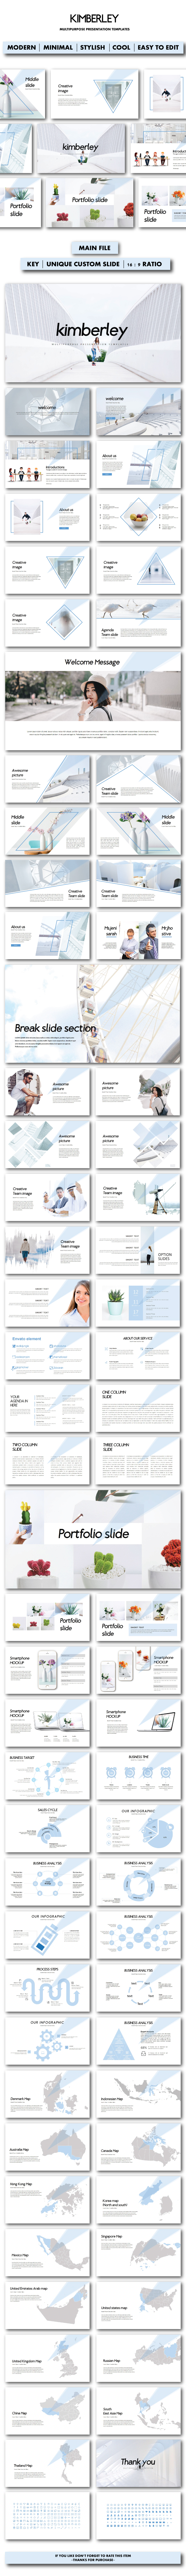 GraphicRiver Kimberley Keynote Templates 20785363